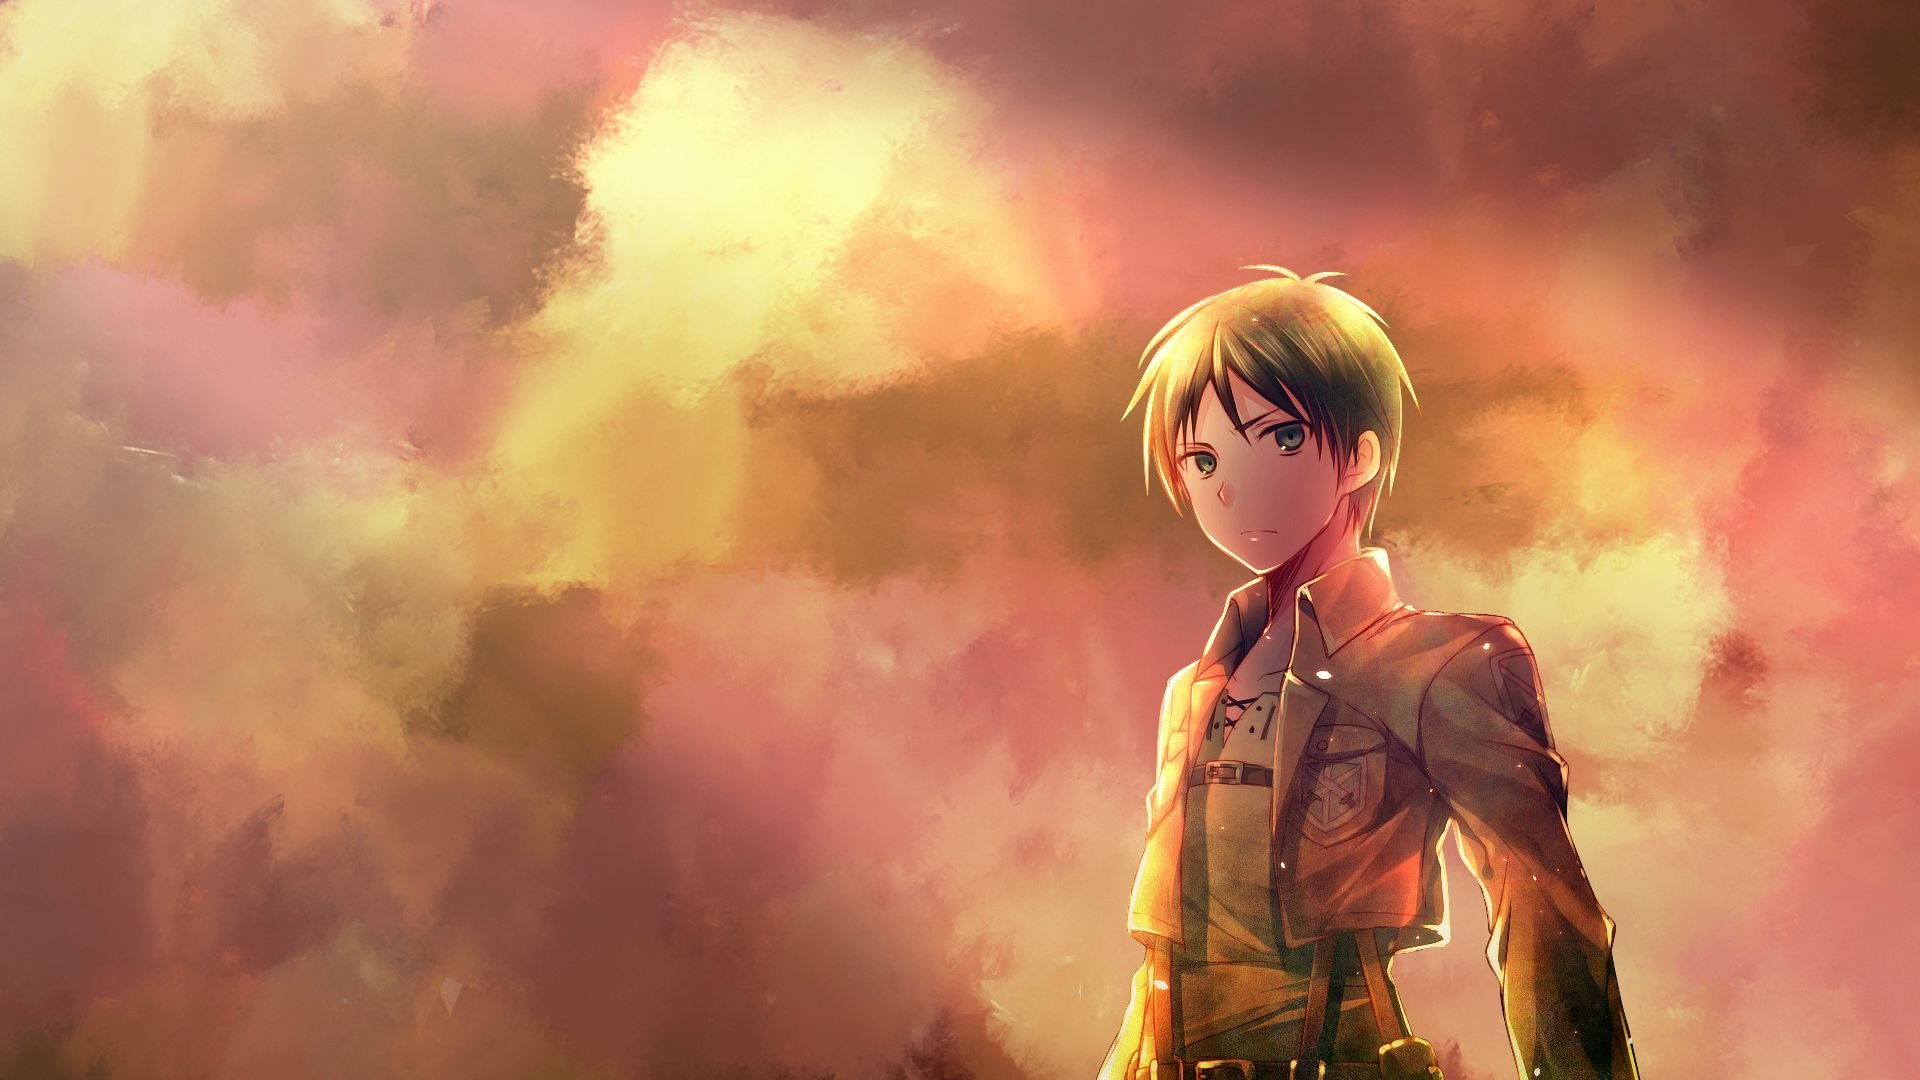 Download Full Hd 1920x1080 Eren Yeager Computer Wallpaper Id 206256 For Free